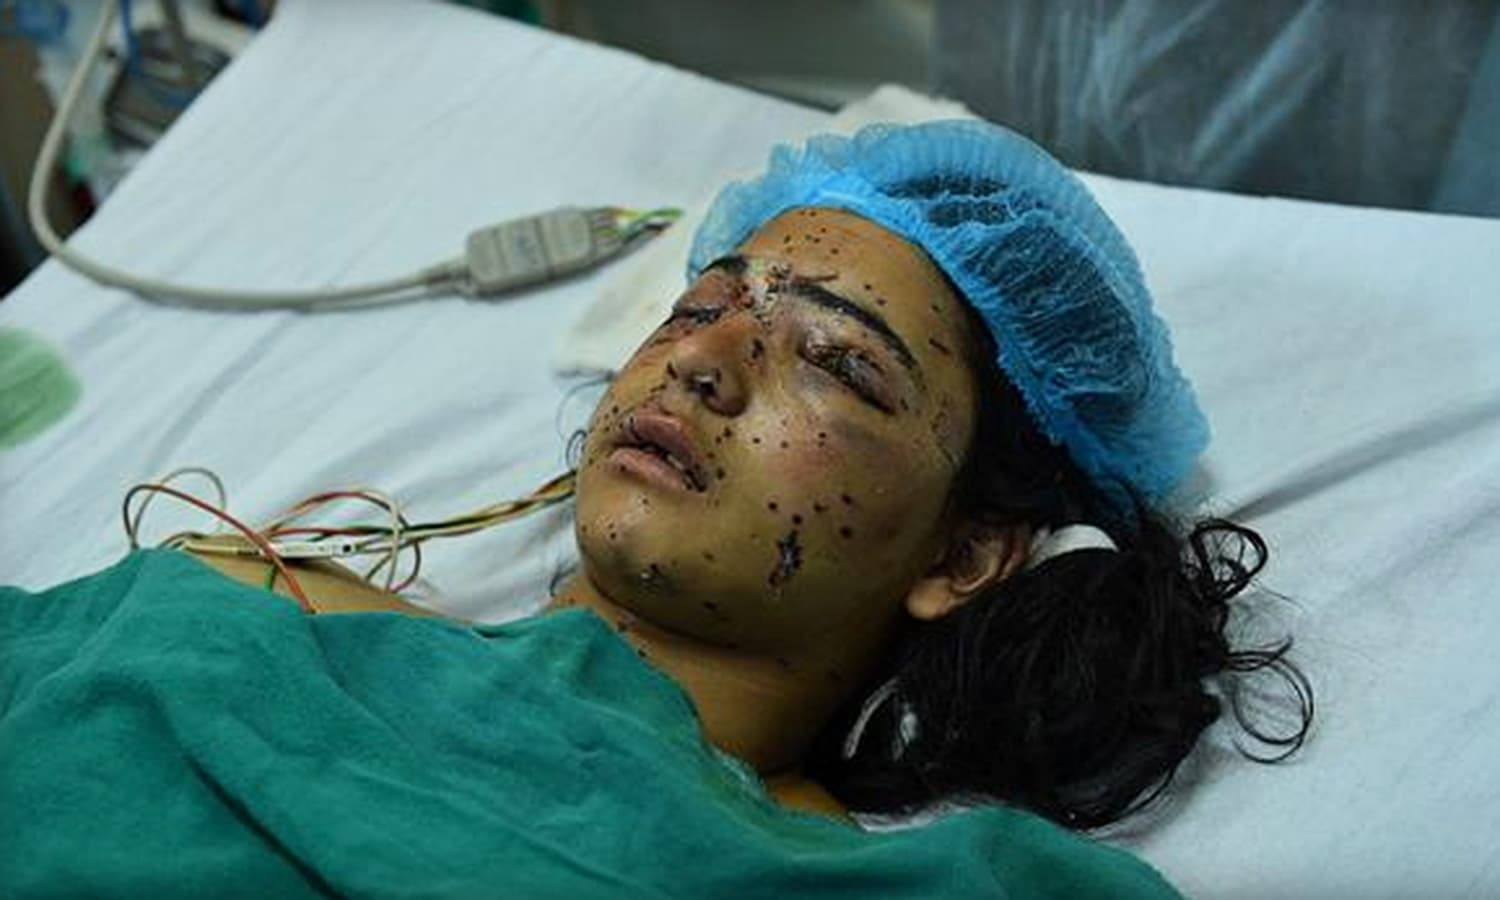 Insha Malik, 14, lays in a hospital bed in Srinagar, after being shot with pellets. —AFP